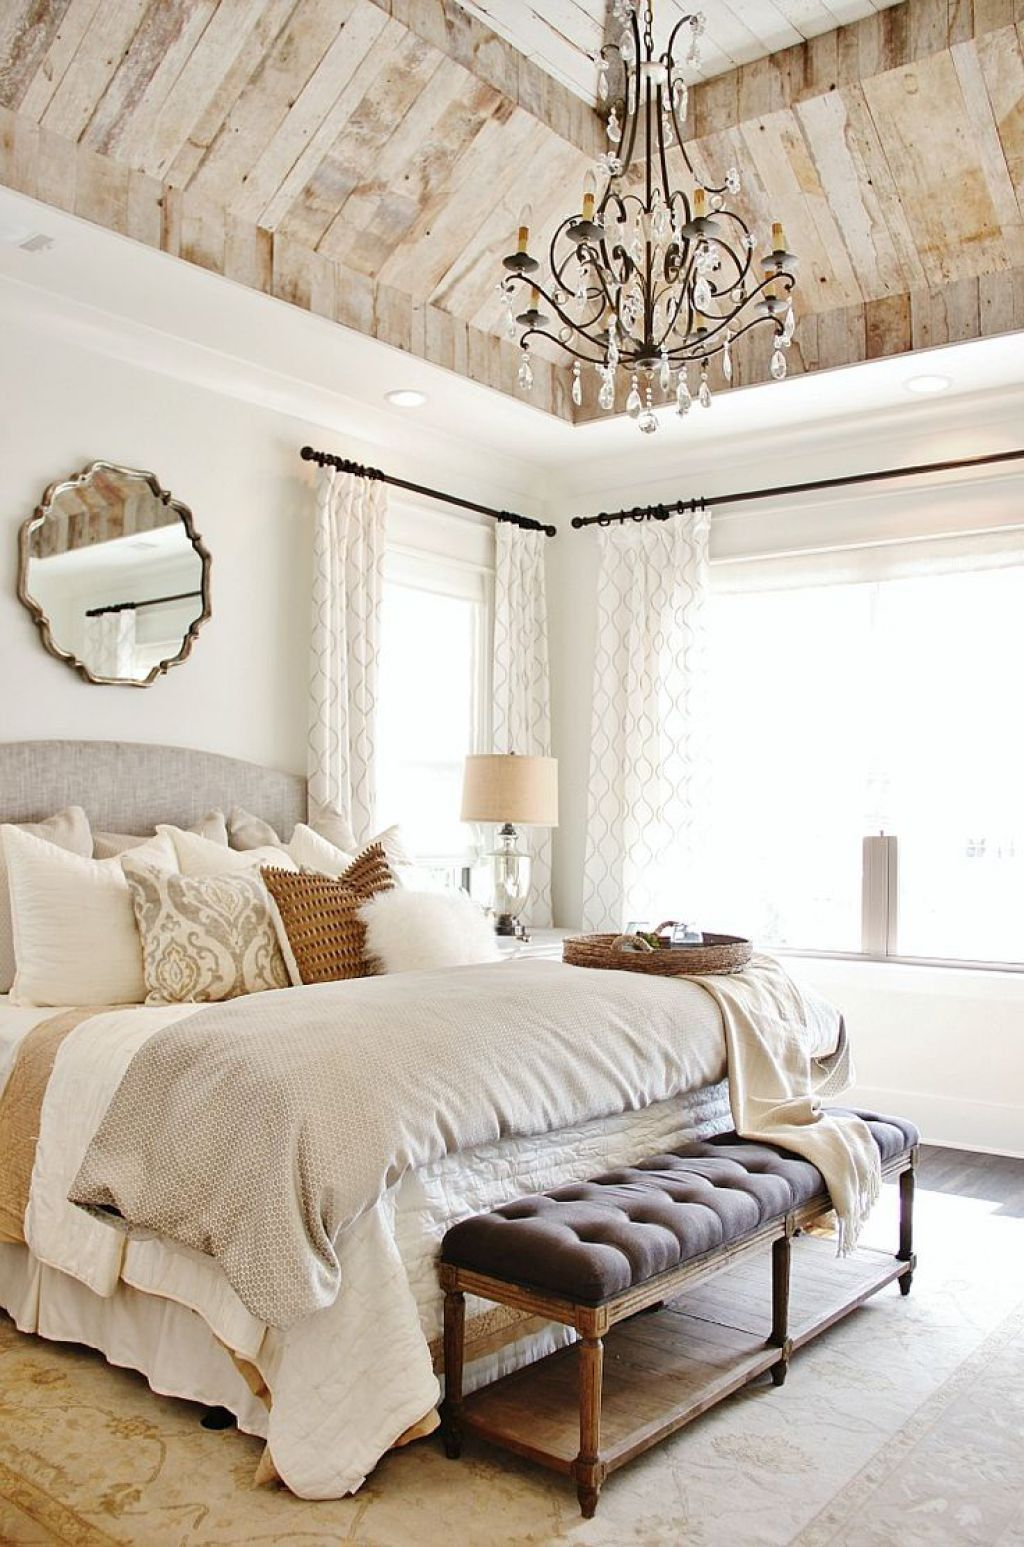 Chic Bedroom With Neutral Wall Color And Chandelier Over King Size ...